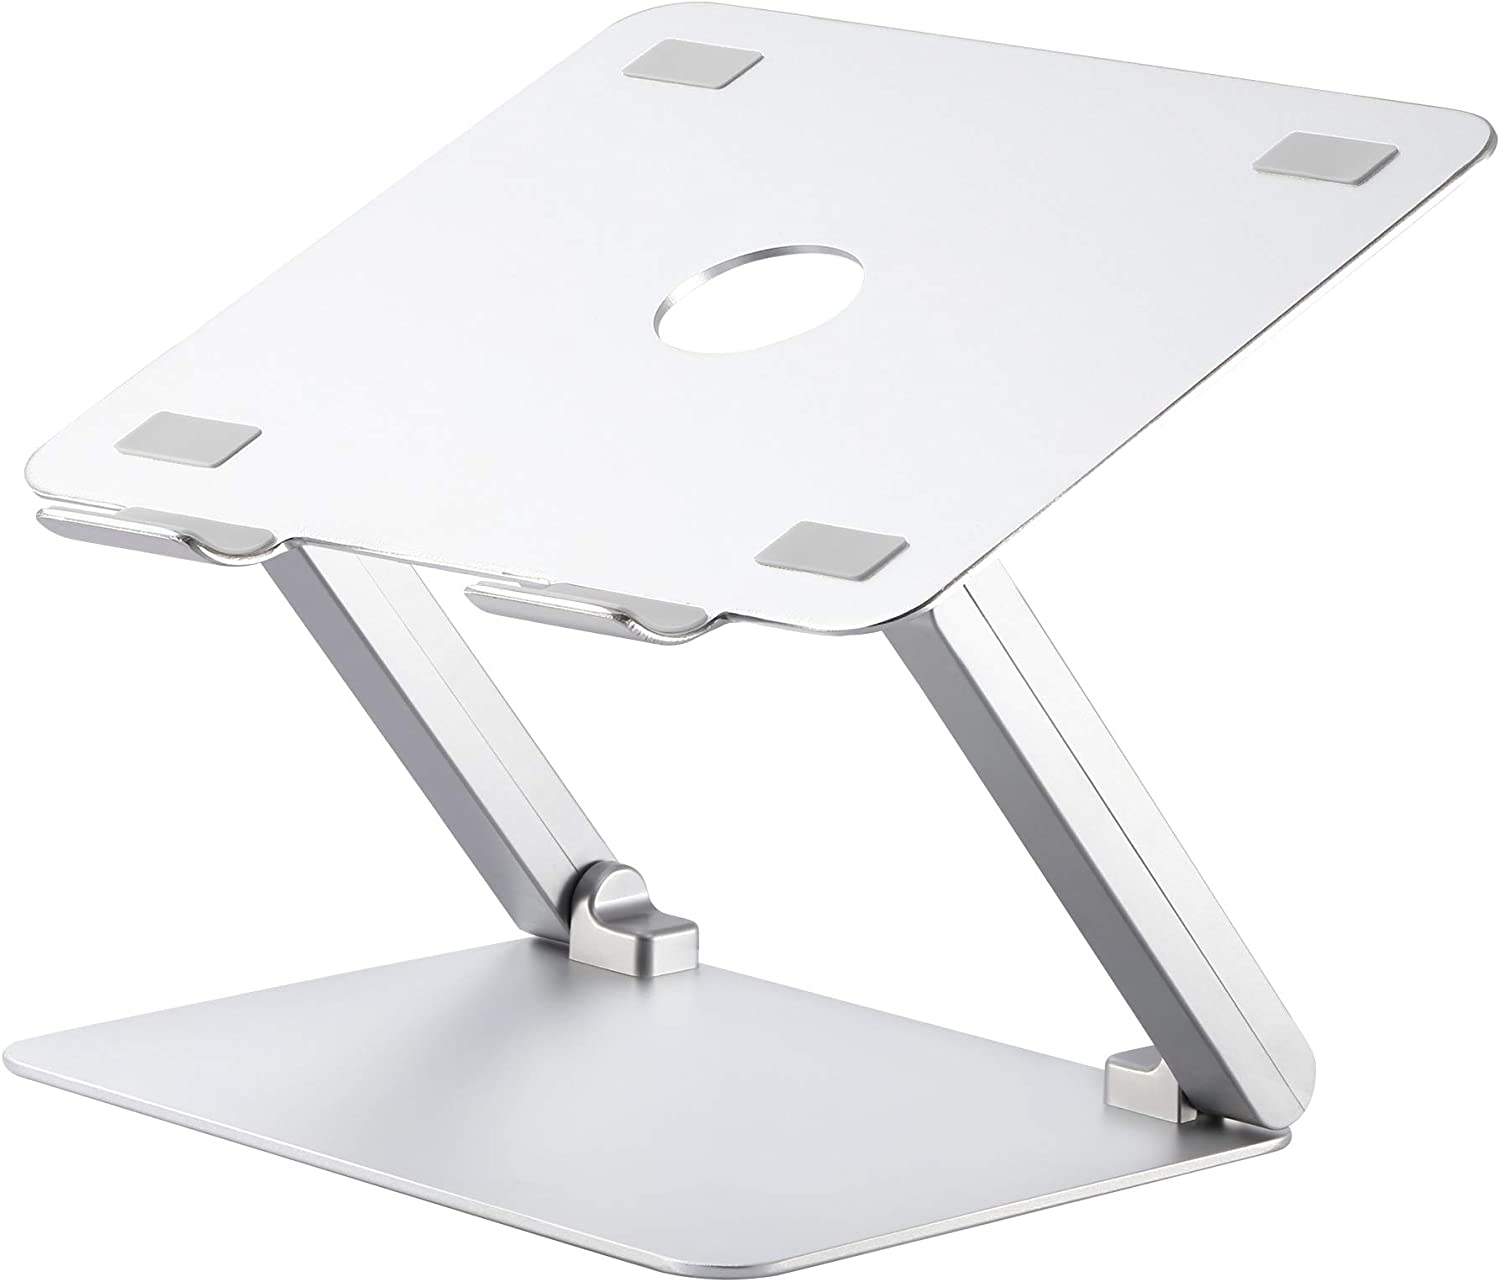 Aluminum Laptop Stand, Kavalan Ergonomic Foldable Height Adjustable Laptop Riser for Desk, Compatible with Apple MacBook Air Pro Dell Lenovo Samsung and All Laptops from 10-17 inches